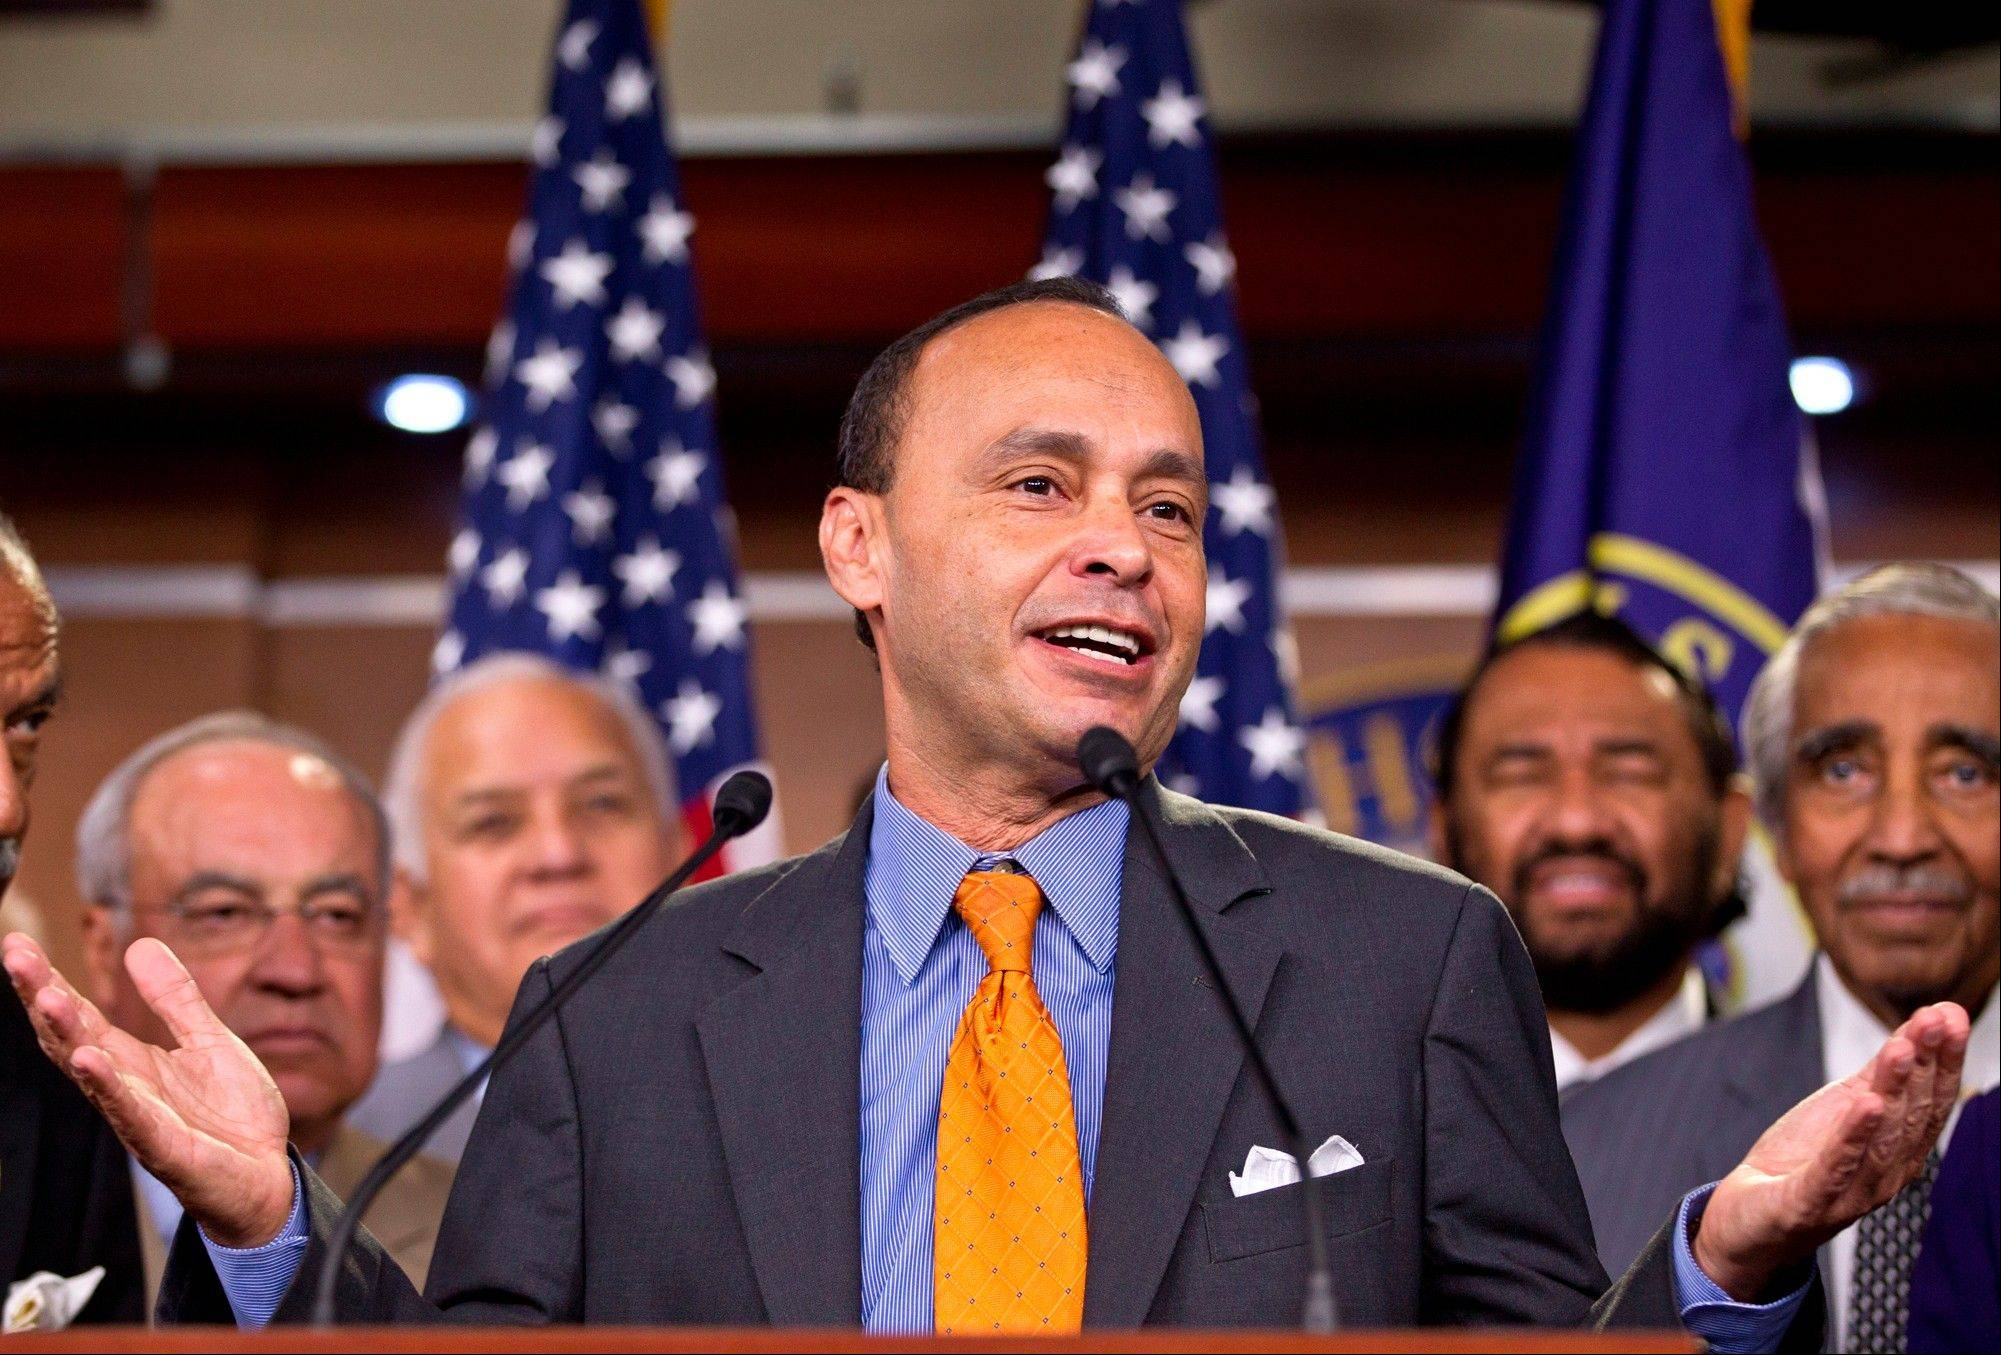 Rep. Luis Gutierrez, a Democrat from Illinois, center, accompanied by fellow House members in August last year, speaks during a news conference on Capitol Hill in Washington. House members writing a bipartisan immigration bill said Thursday they had patched over a dispute that threatened their efforts, even as they and the rest of Congress prepared to return home for a weeklong recess where many could confront voter questions on the issue. �I�m very pleased,� Gutierrez said. �We�re going to get there. There�s going to be justice done for our immigrant community.�